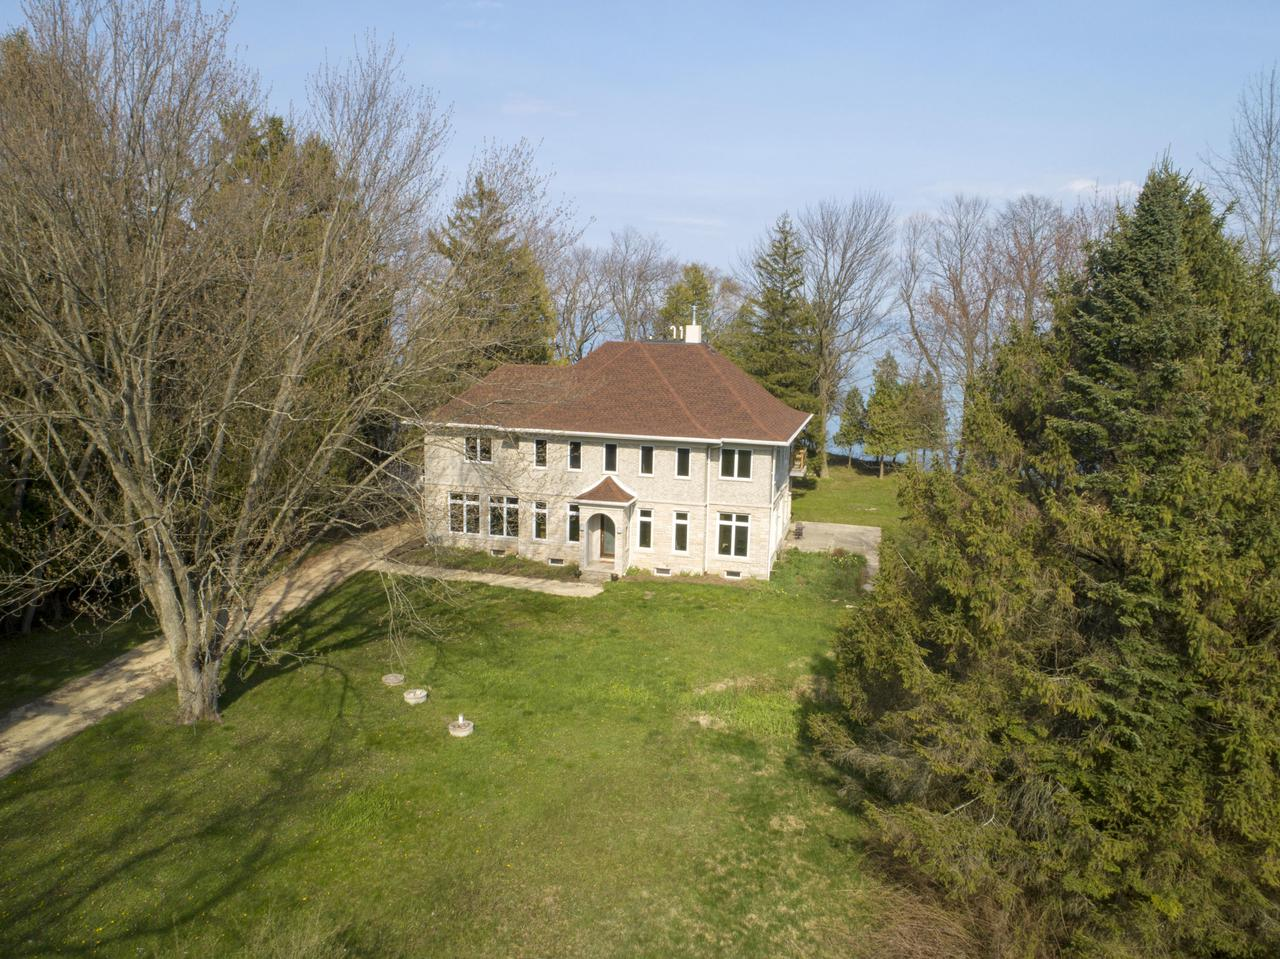 7.89 acres of Lake Michigan frontage offers the perfect setting for this outstanding 4 bedrooms, 5 1/2 bath residence. Enjoy lake views from every room in the house. Hardwood floors throughout the open concept LR and DR. Private office, spa room with hot tub, sauna, and full shower, chef designed kitchen. Four large bedroom suites with lake views, walk-in closets, and private baths. Finished lower level. A large outbuilding with tall doors is perfect for a car collection or a boat and is located as you enter the property along with a separate residence that can be remodeled into guest quarters. 25 minutes from downtown Milwaukee.